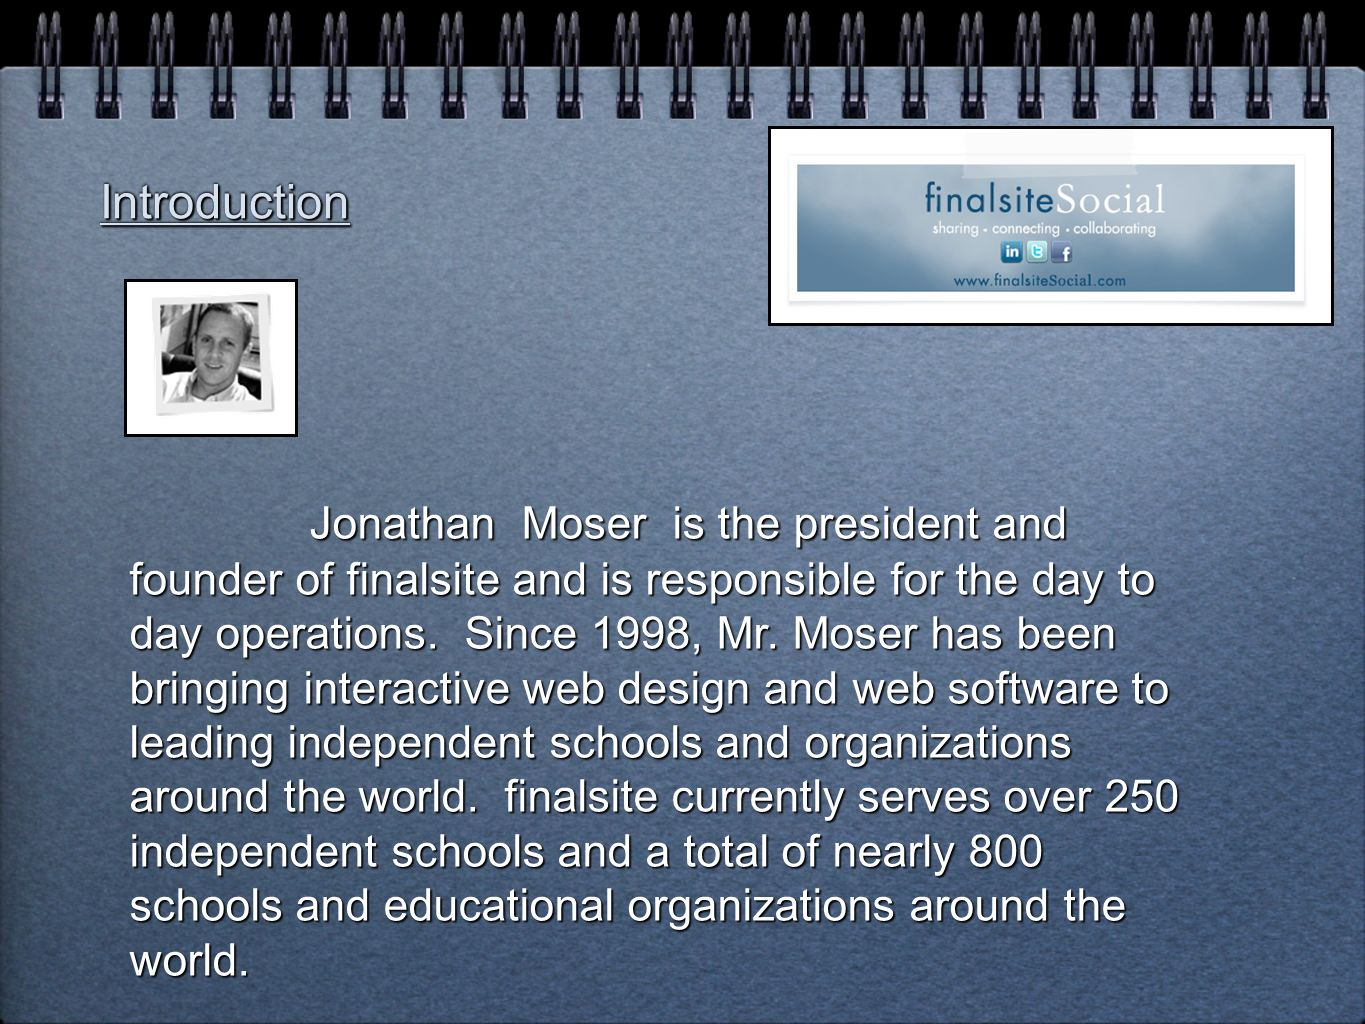 Jonathan Moser is the president and founder of finalsite and is responsible for the day to day operations.